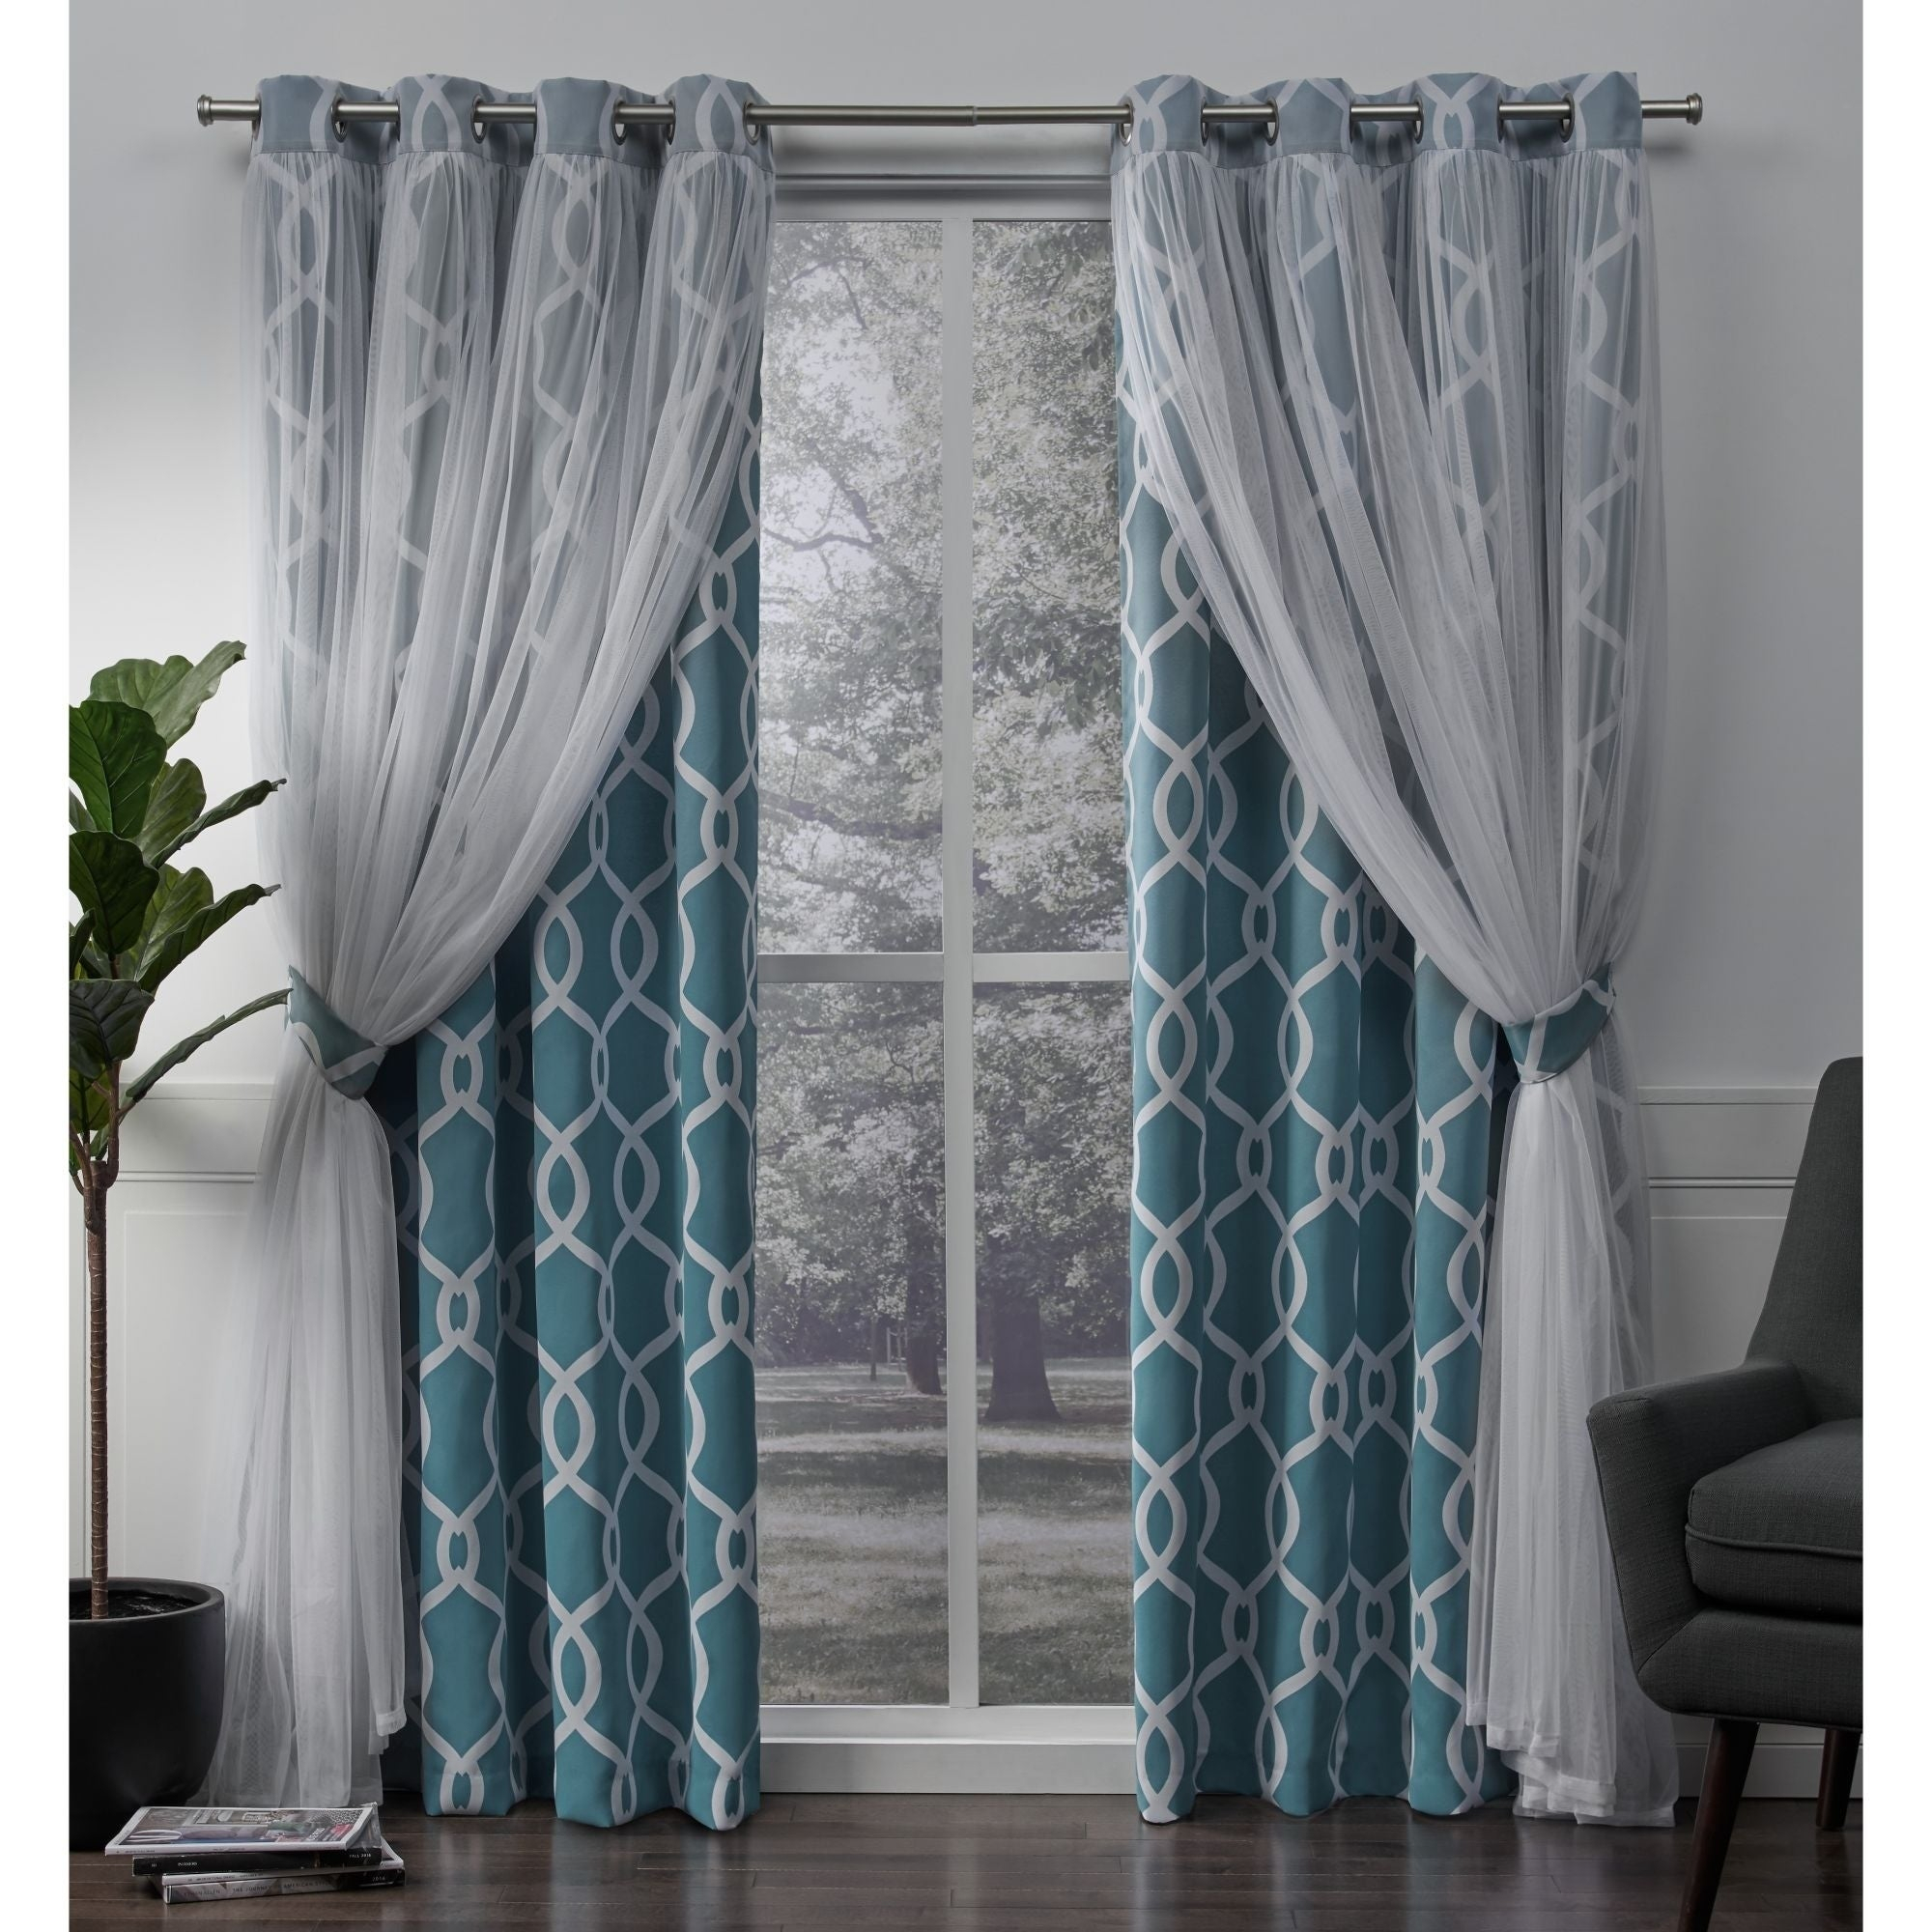 Ati Home Carmela Thermal Woven Blackout Grommet Top Curtain Panel Pair For Woven Blackout Grommet Top Curtain Panel Pairs (View 12 of 30)